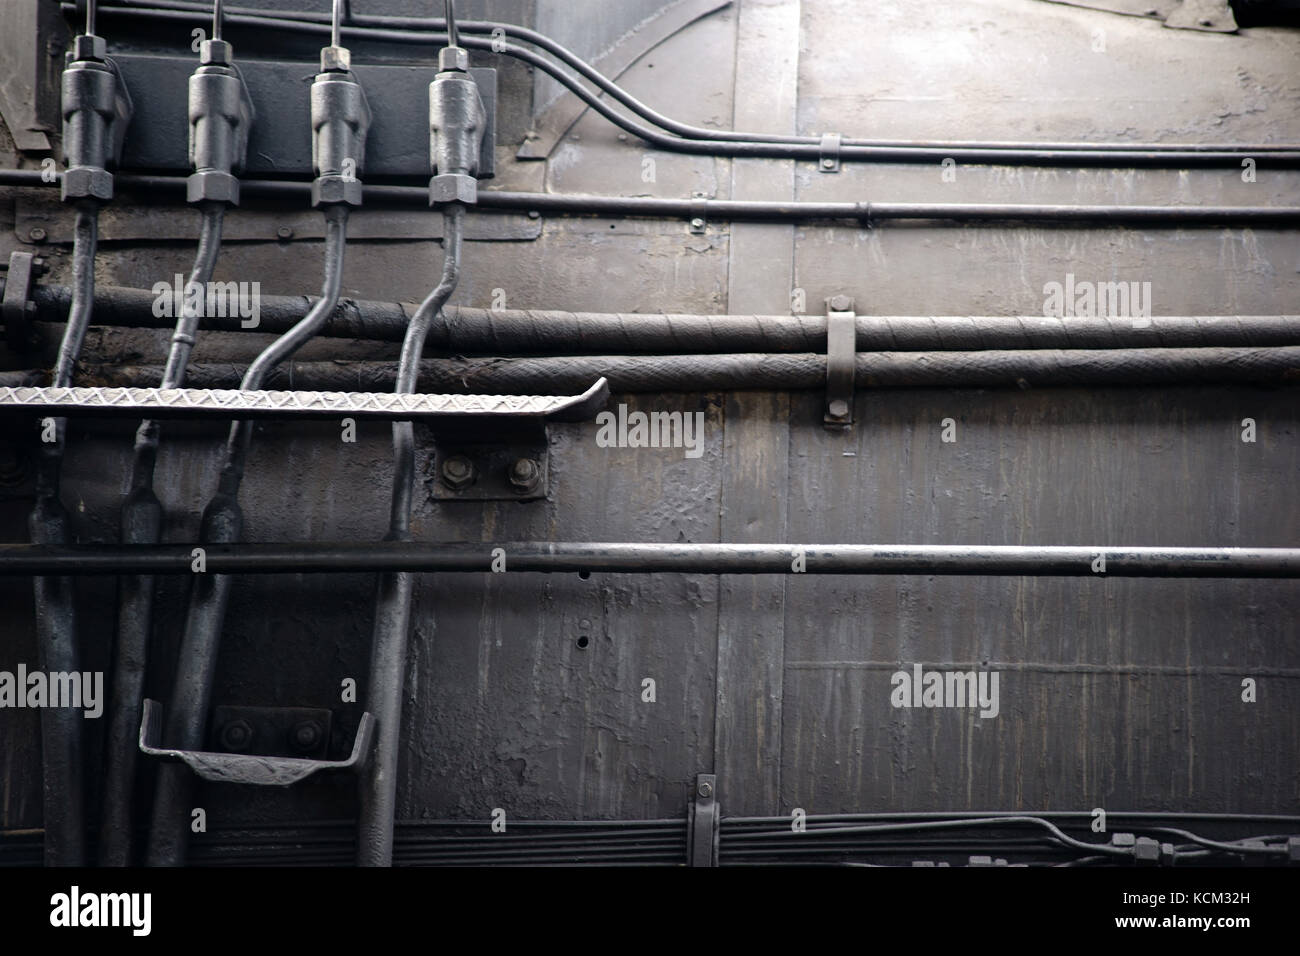 Boiler Tubes Stock Photos & Boiler Tubes Stock Images - Alamy